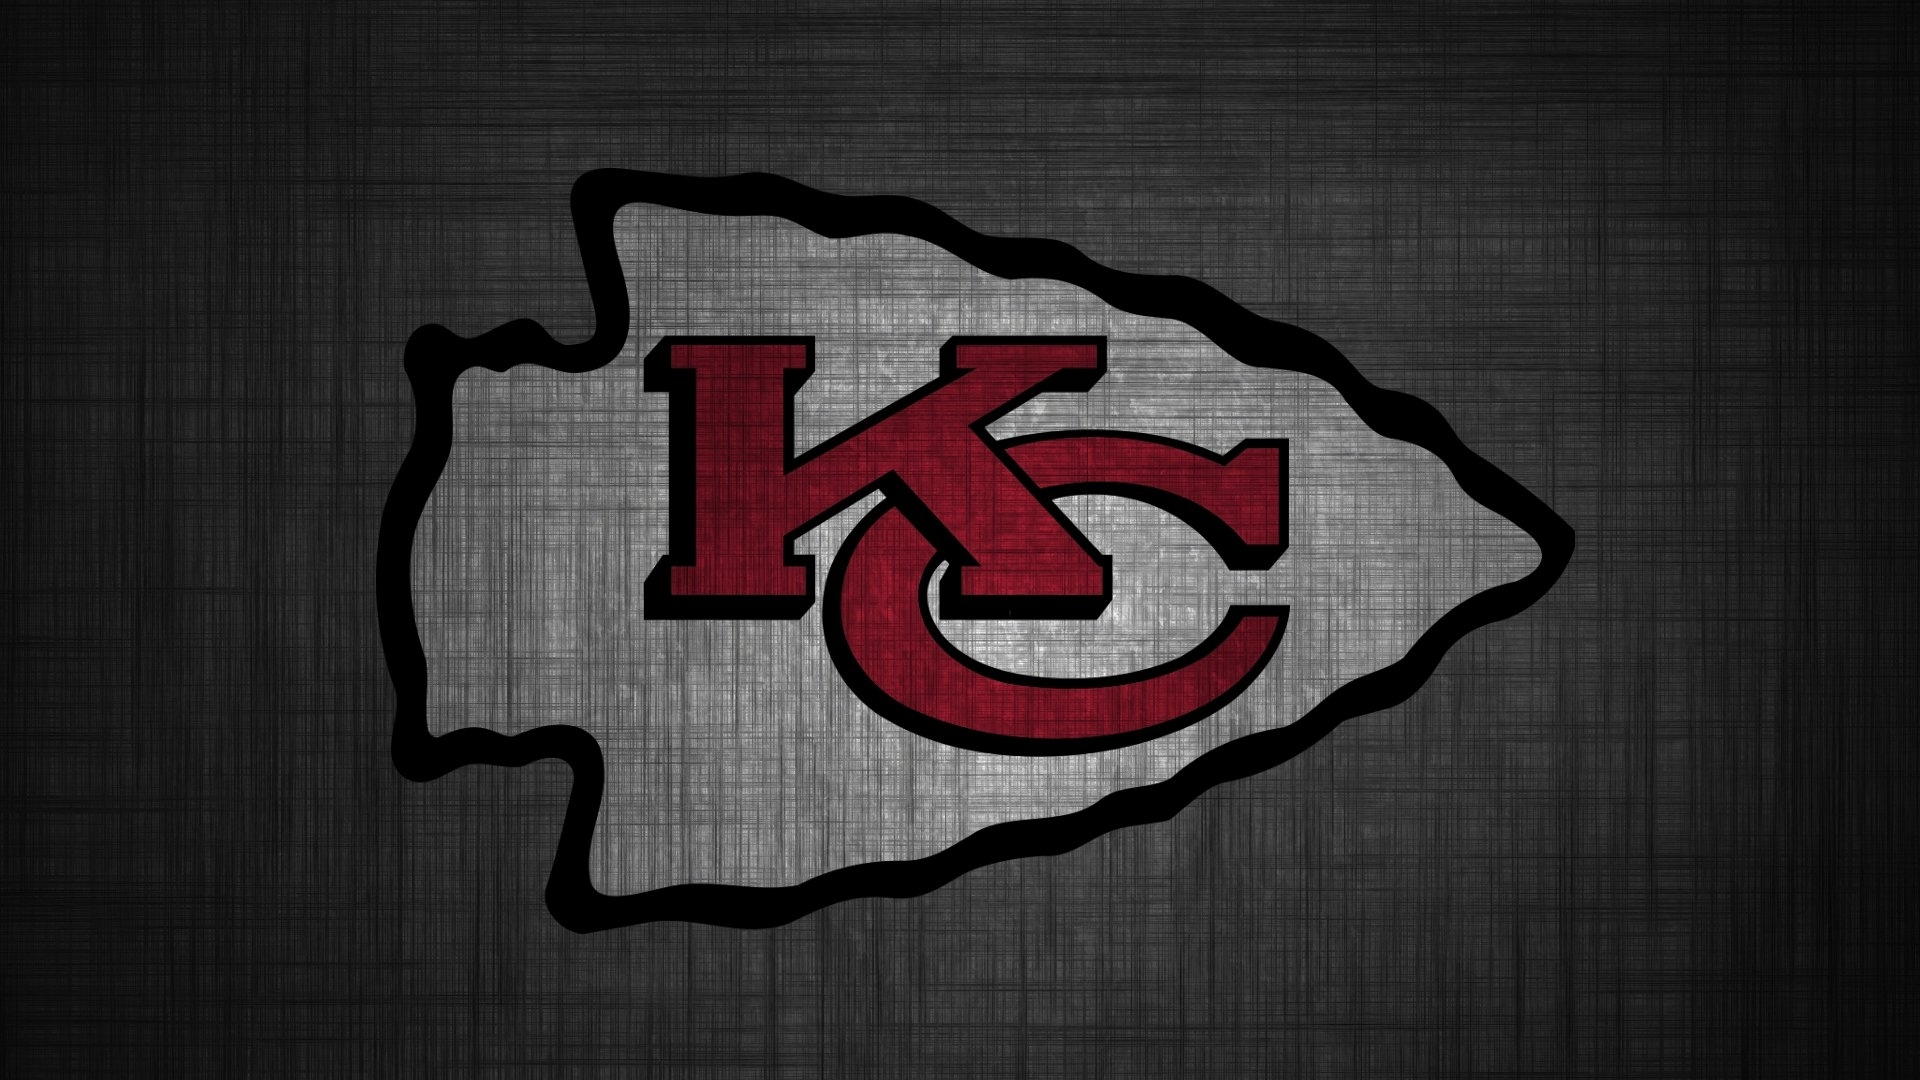 10 New Kansas City Chiefs Hd Wallpaper FULL HD 1920×1080 For PC Background